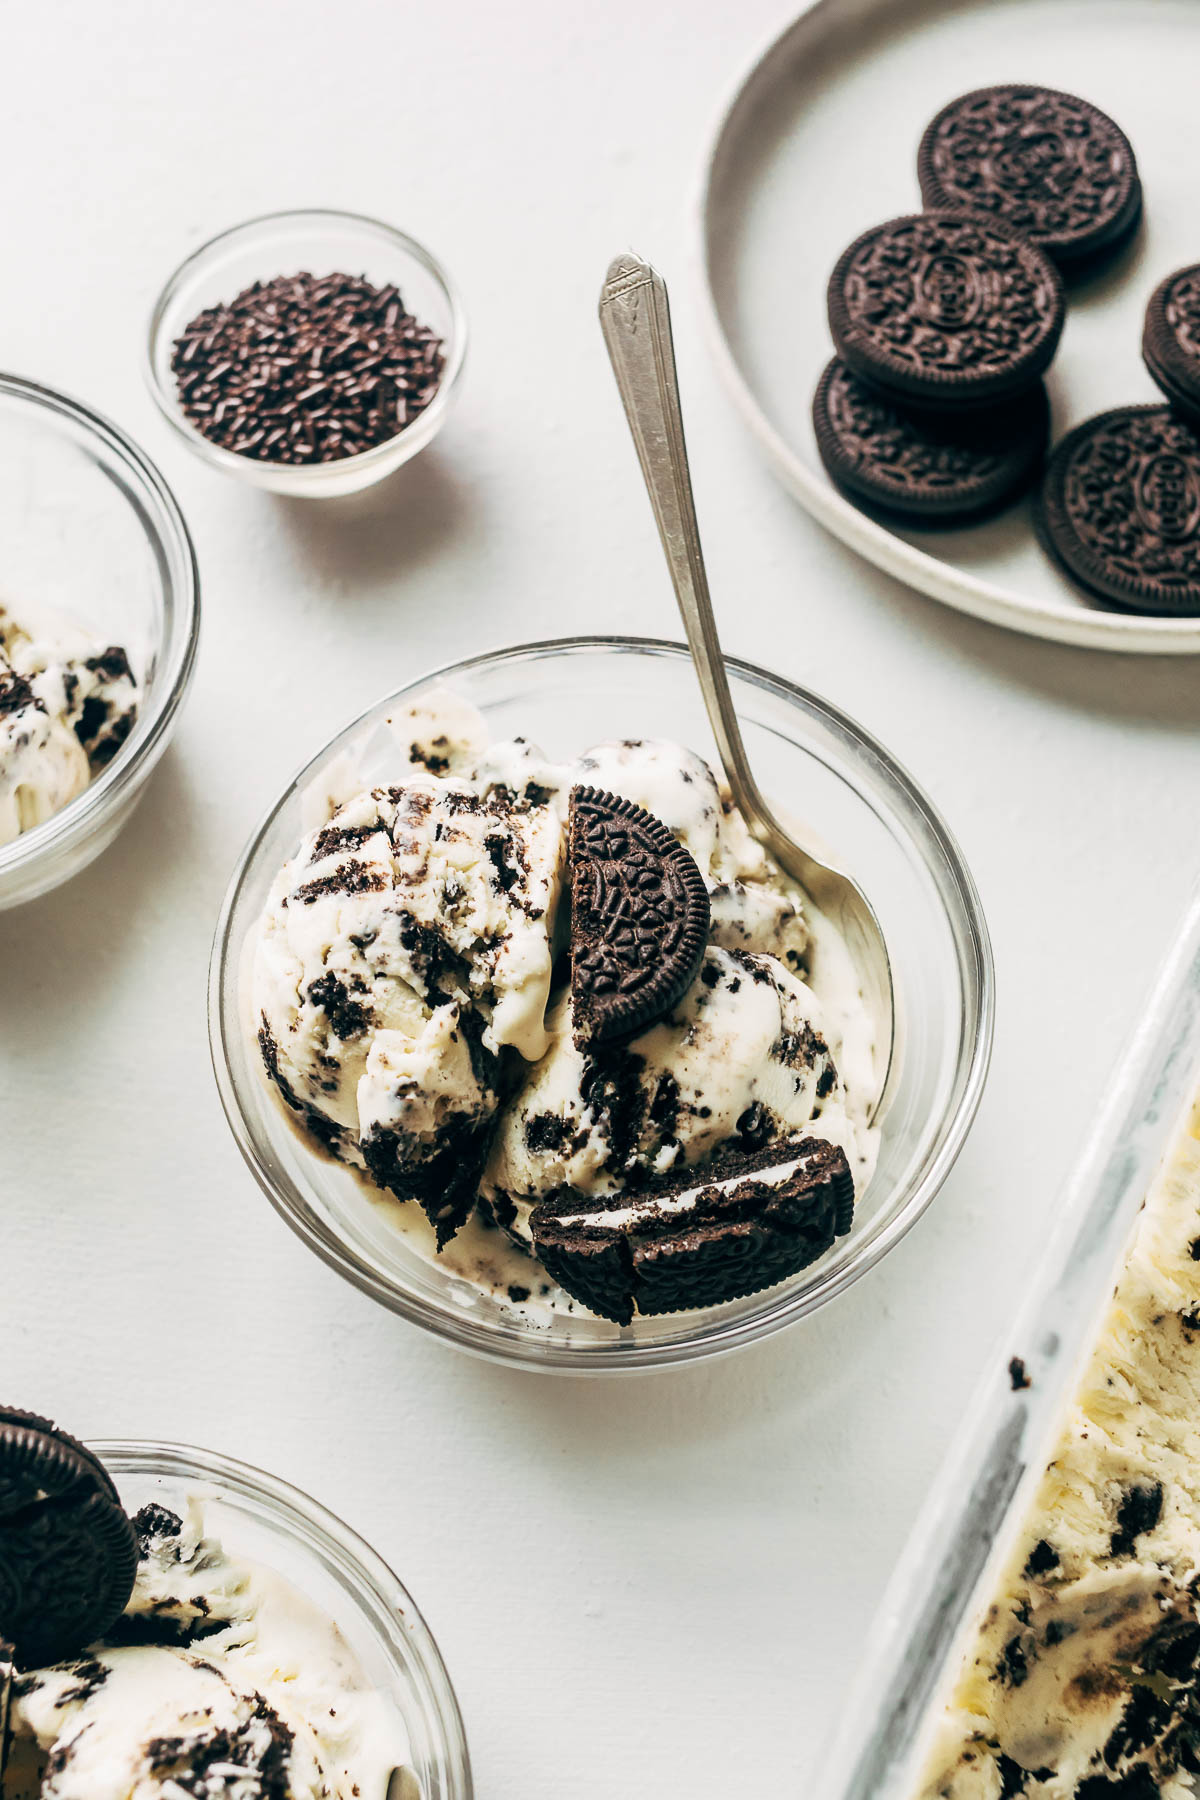 A dish of ice cream with Oreo cookies on top.